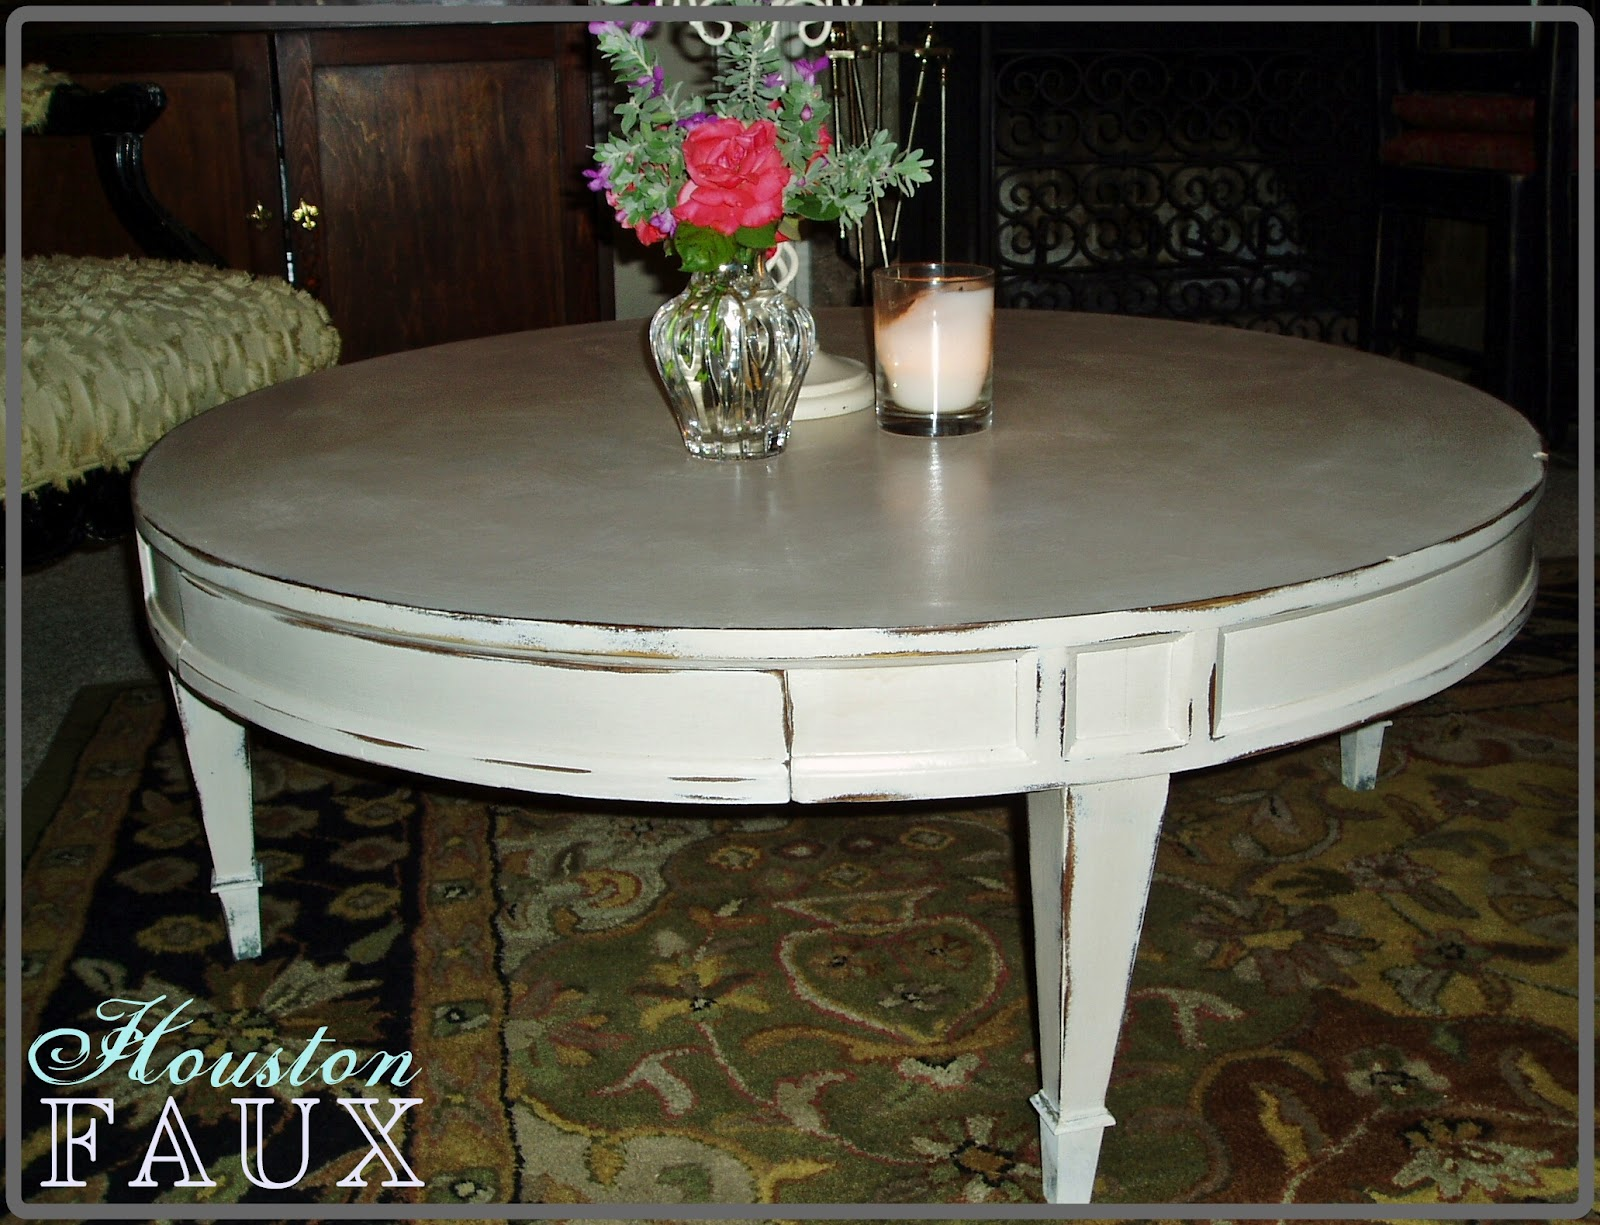 Faux Painting Furniture Back To Basics Round Coffee Table Gets A Shabby Cream Finish